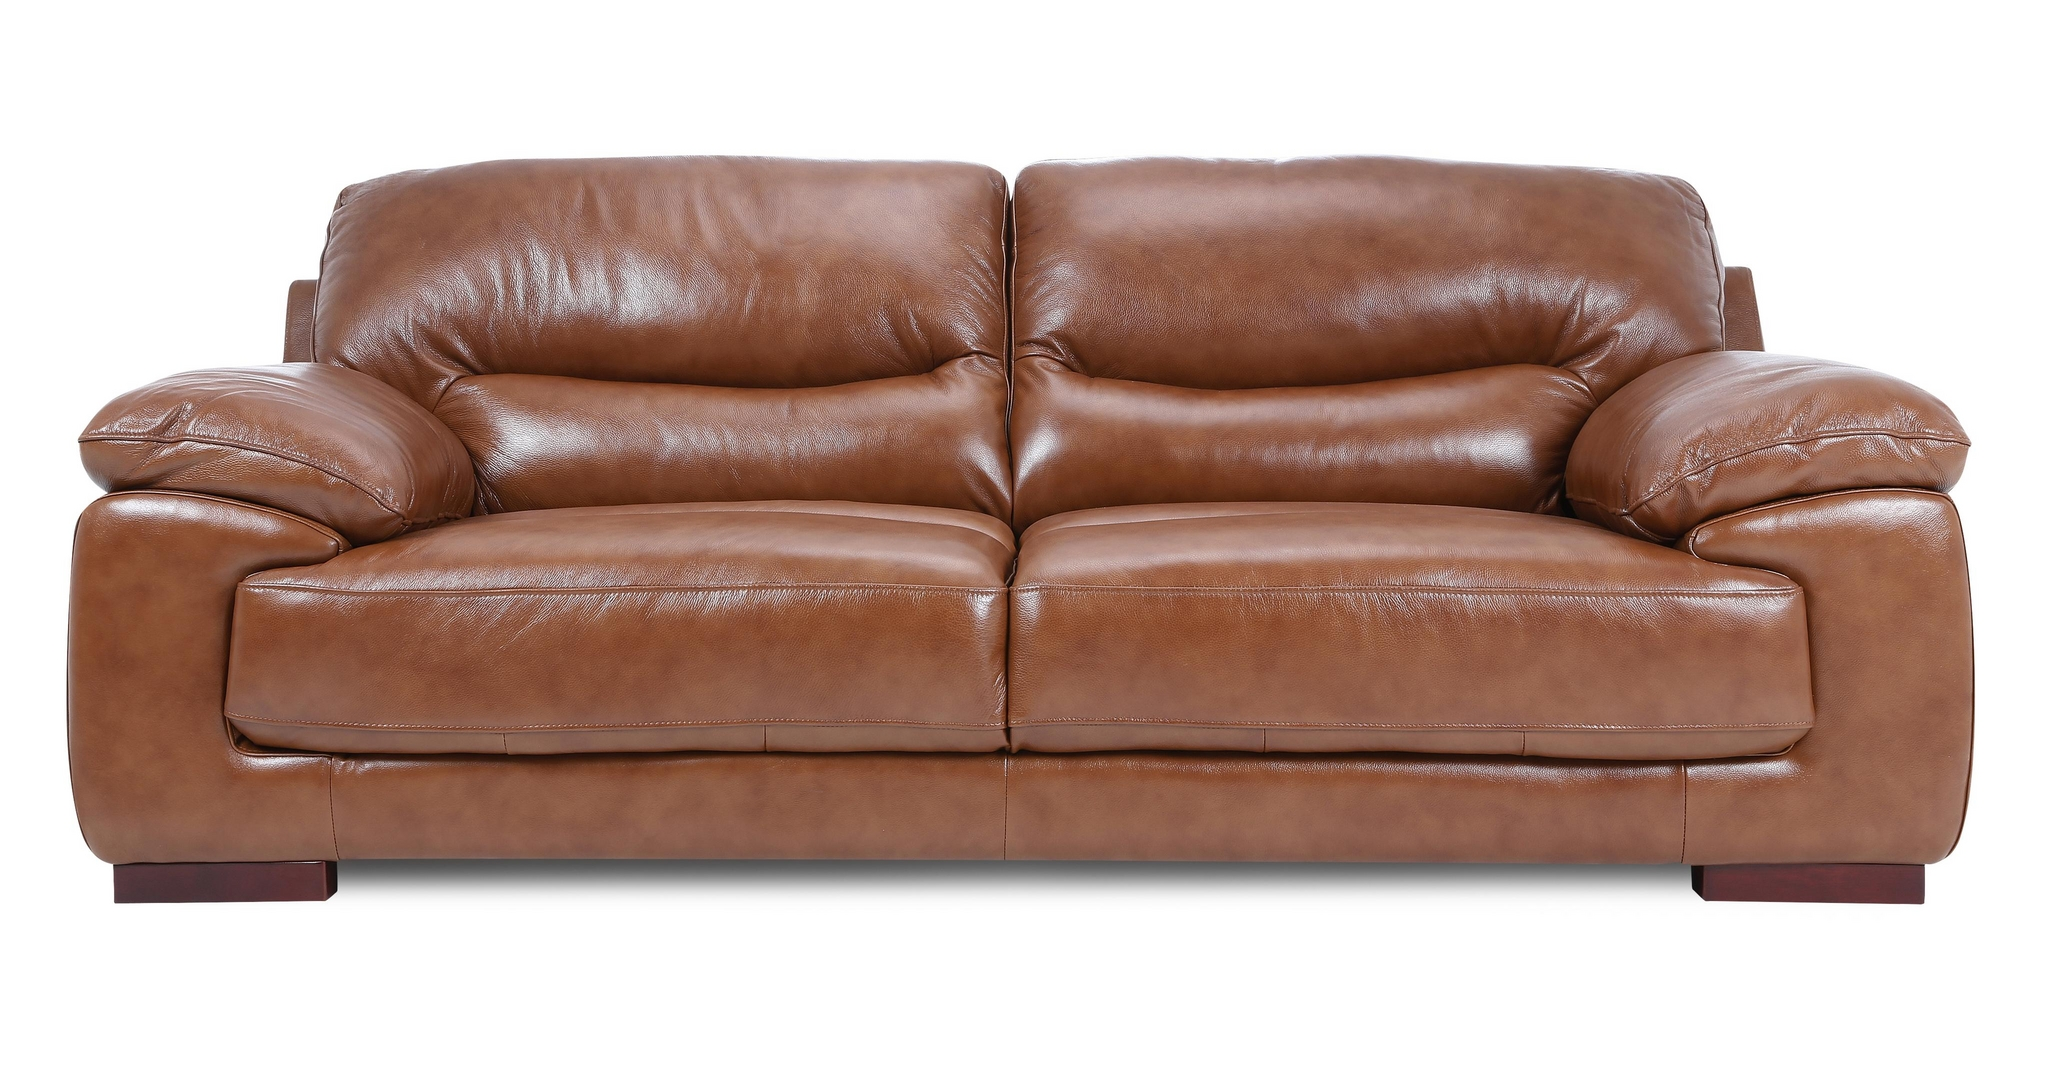 Dfs Dazzle Settee Brandy Colour Couch 3 Seater Leather Sofa